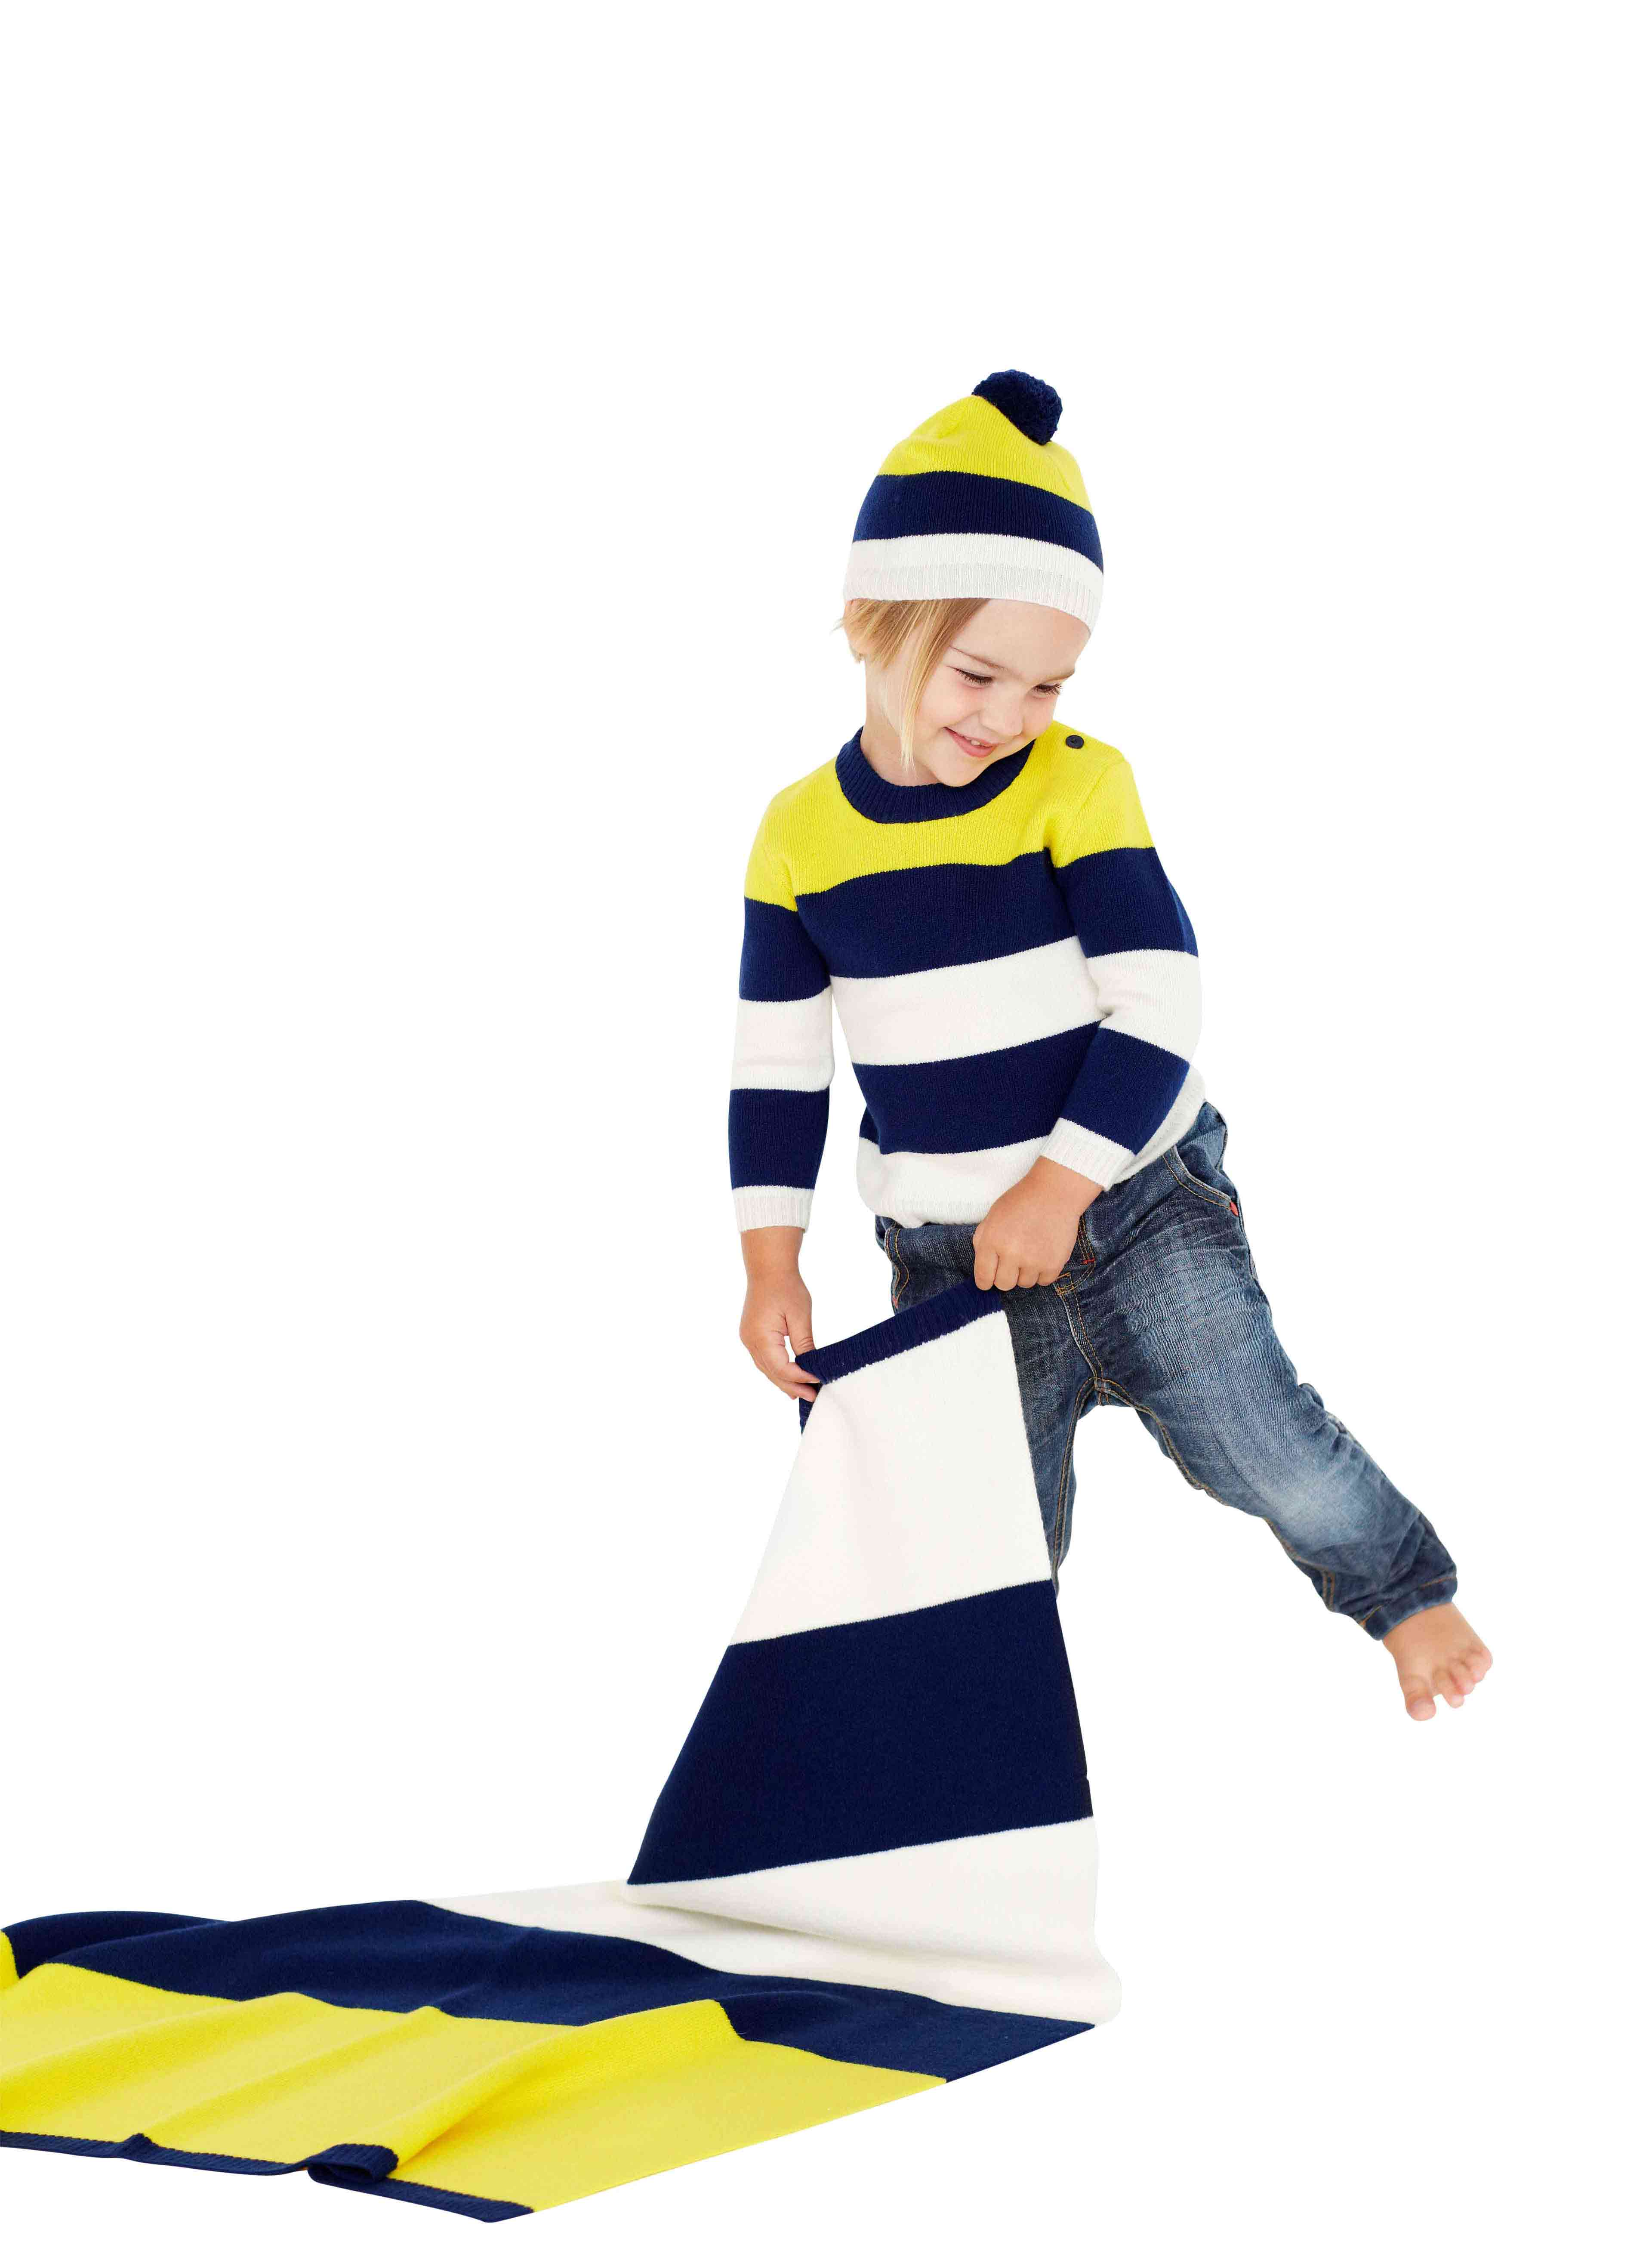 Atelier-Child_FW15_The-Stripe-Navy-Sweater-2_Hi-Res_Deepetched